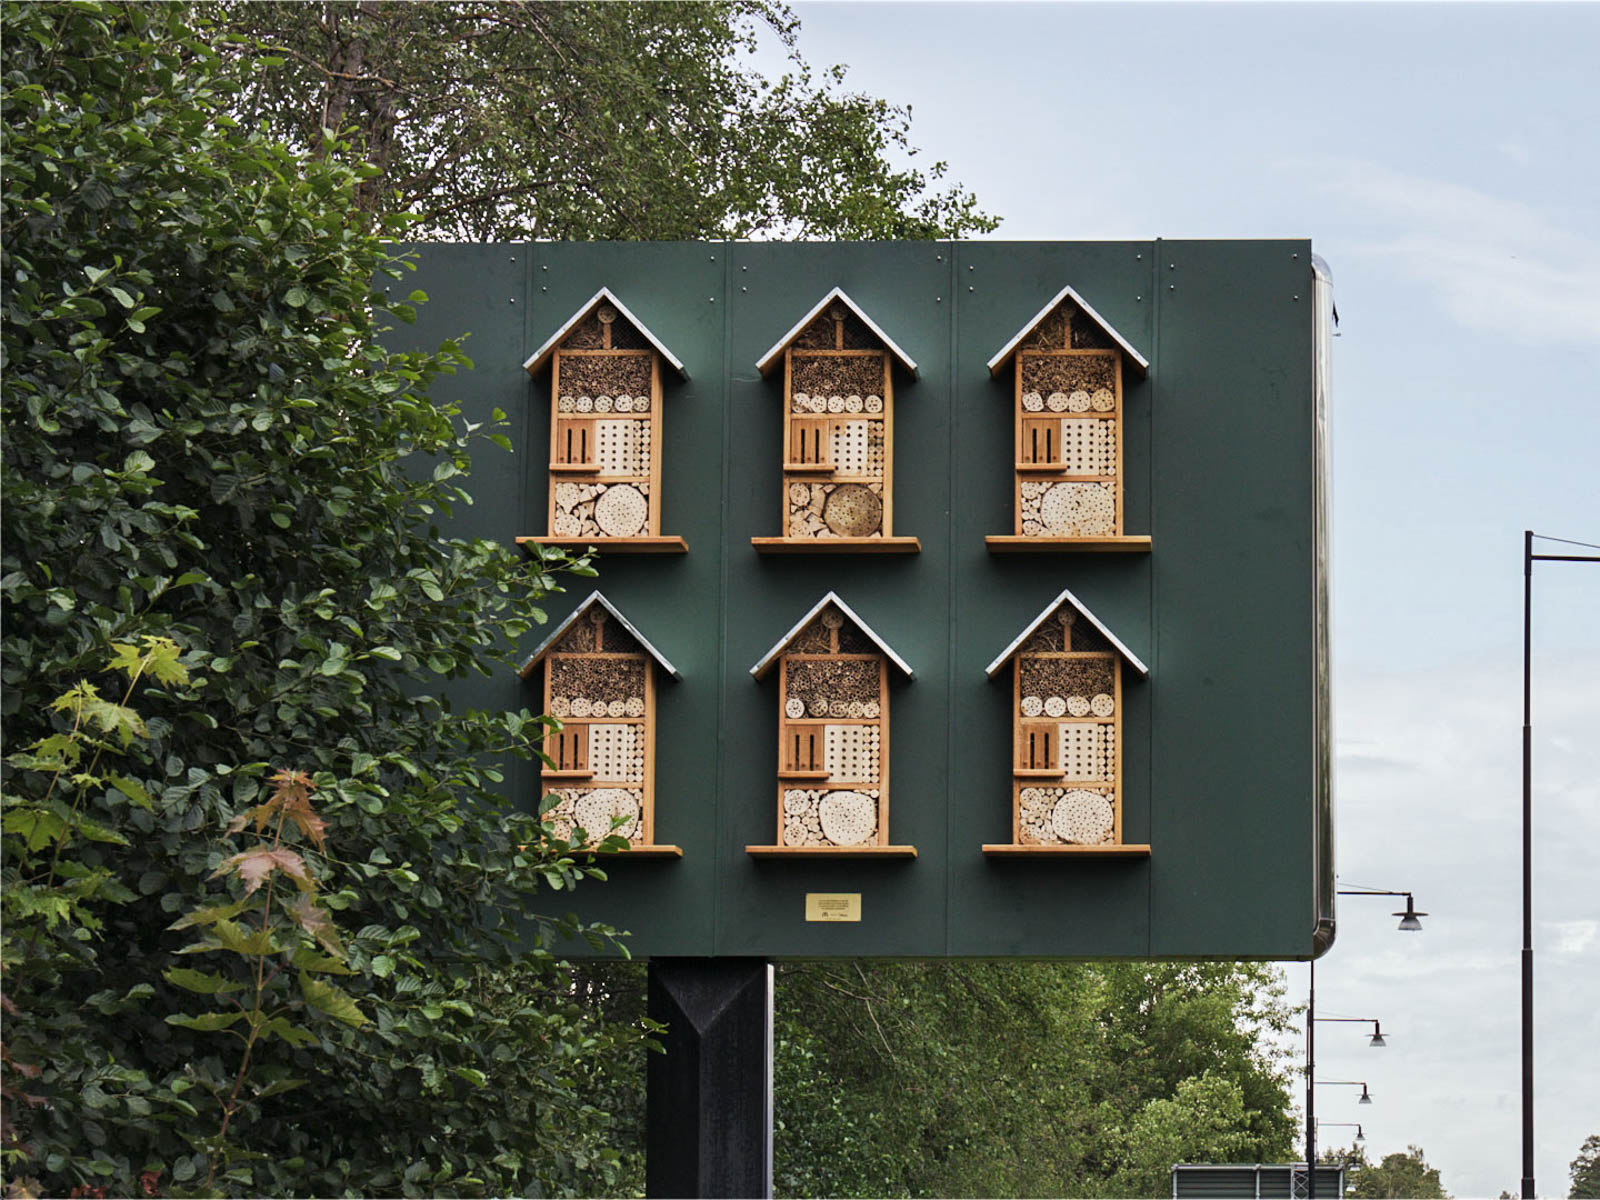 McDonald's Sweden Is Putting Beehives in Billboards